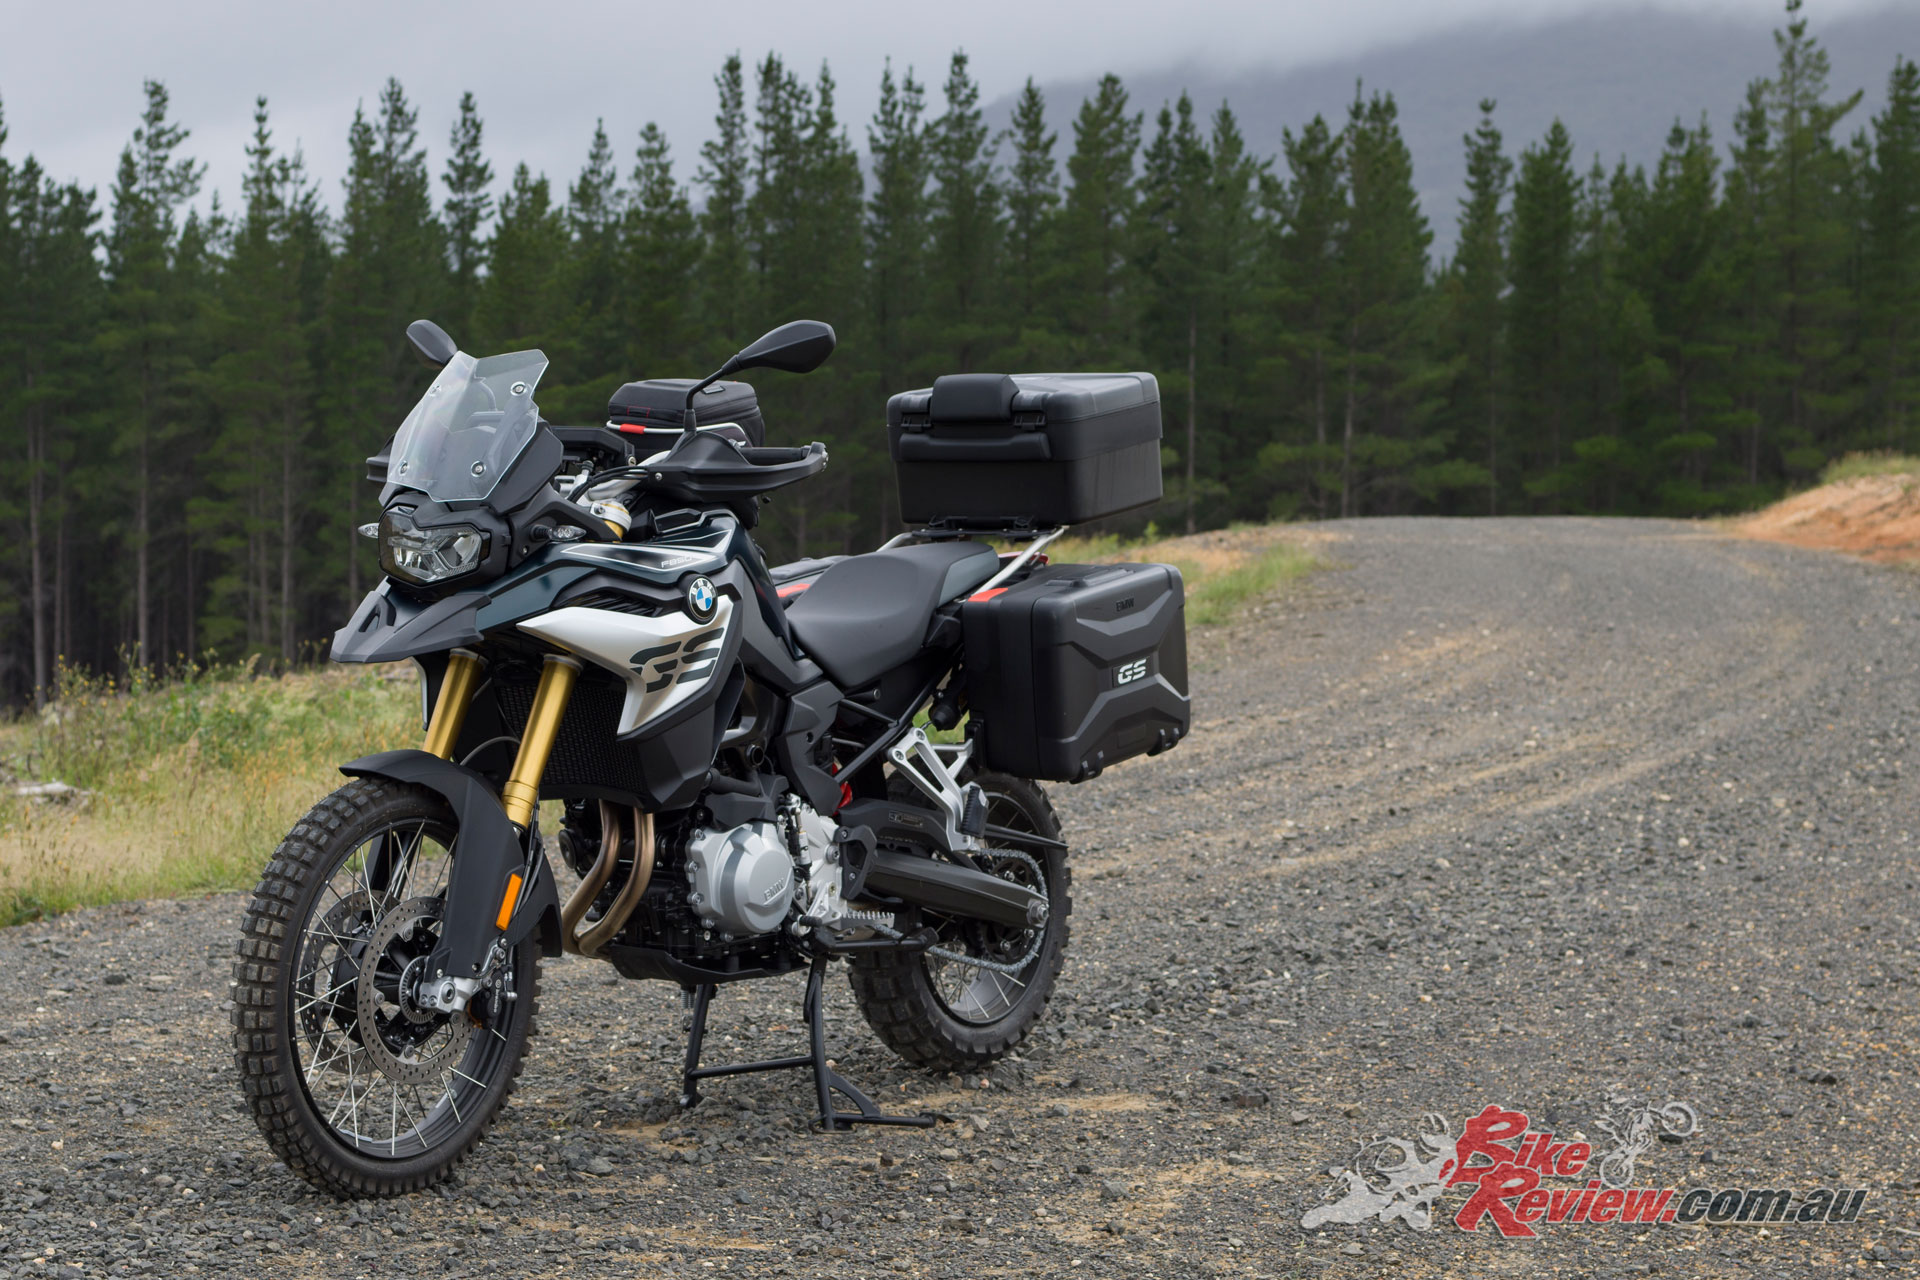 2019 BMW F 850 GS in full touring kit